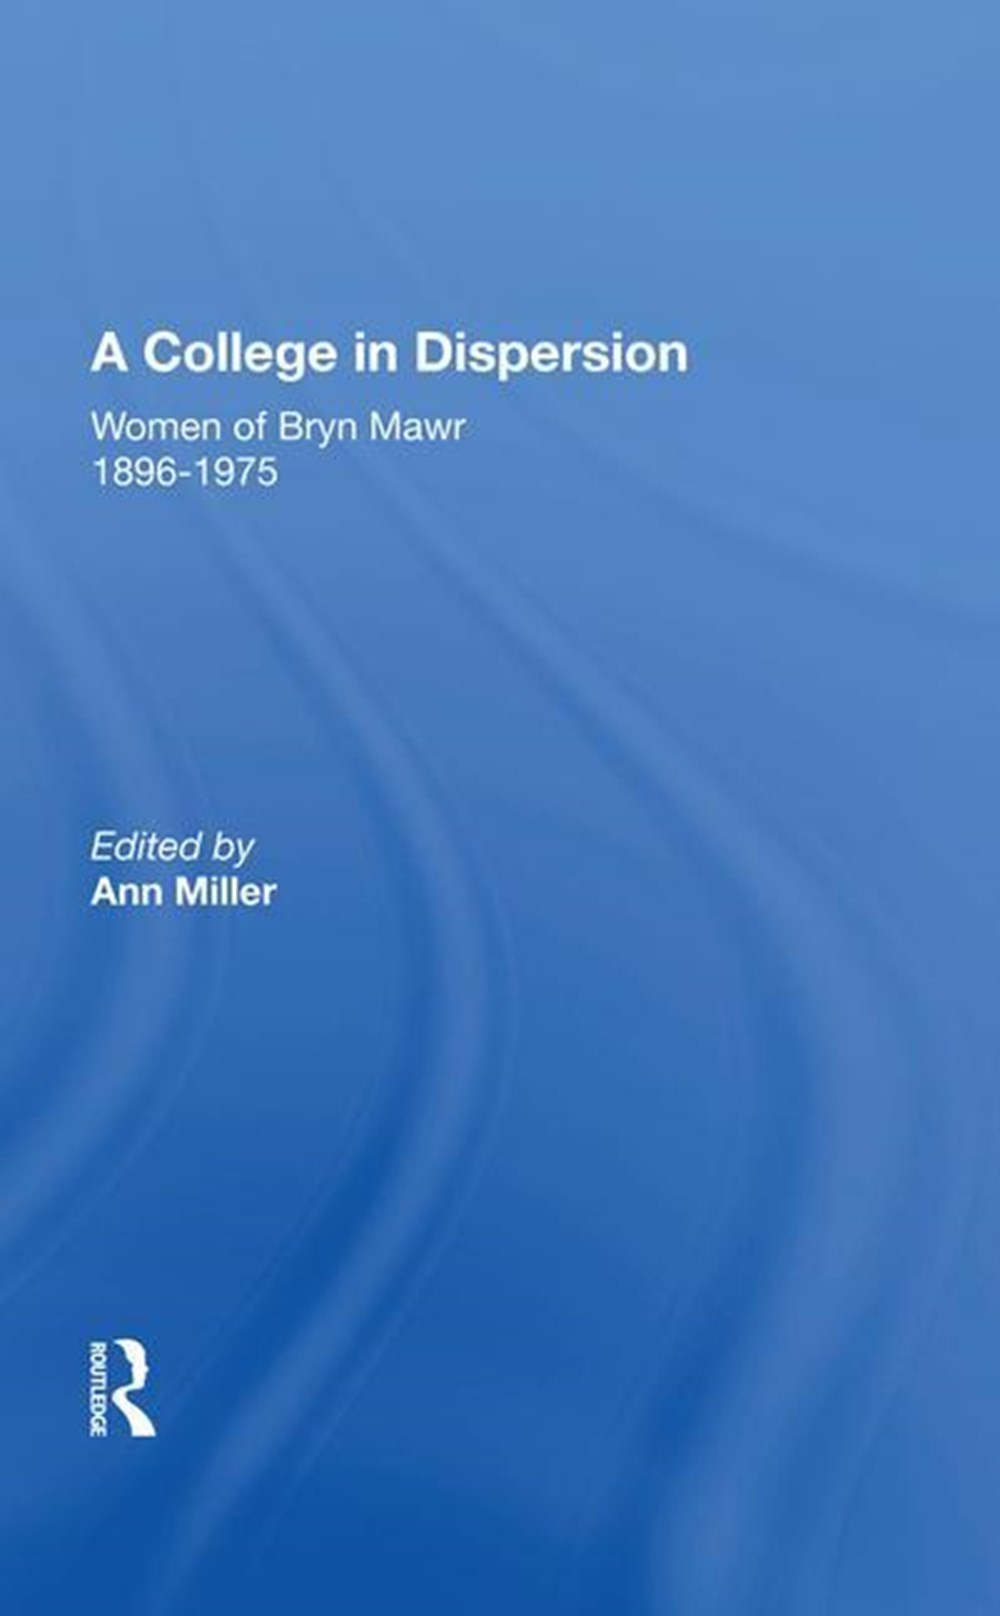 College in Dispersion Women of Bryn Mawr 1896-1975